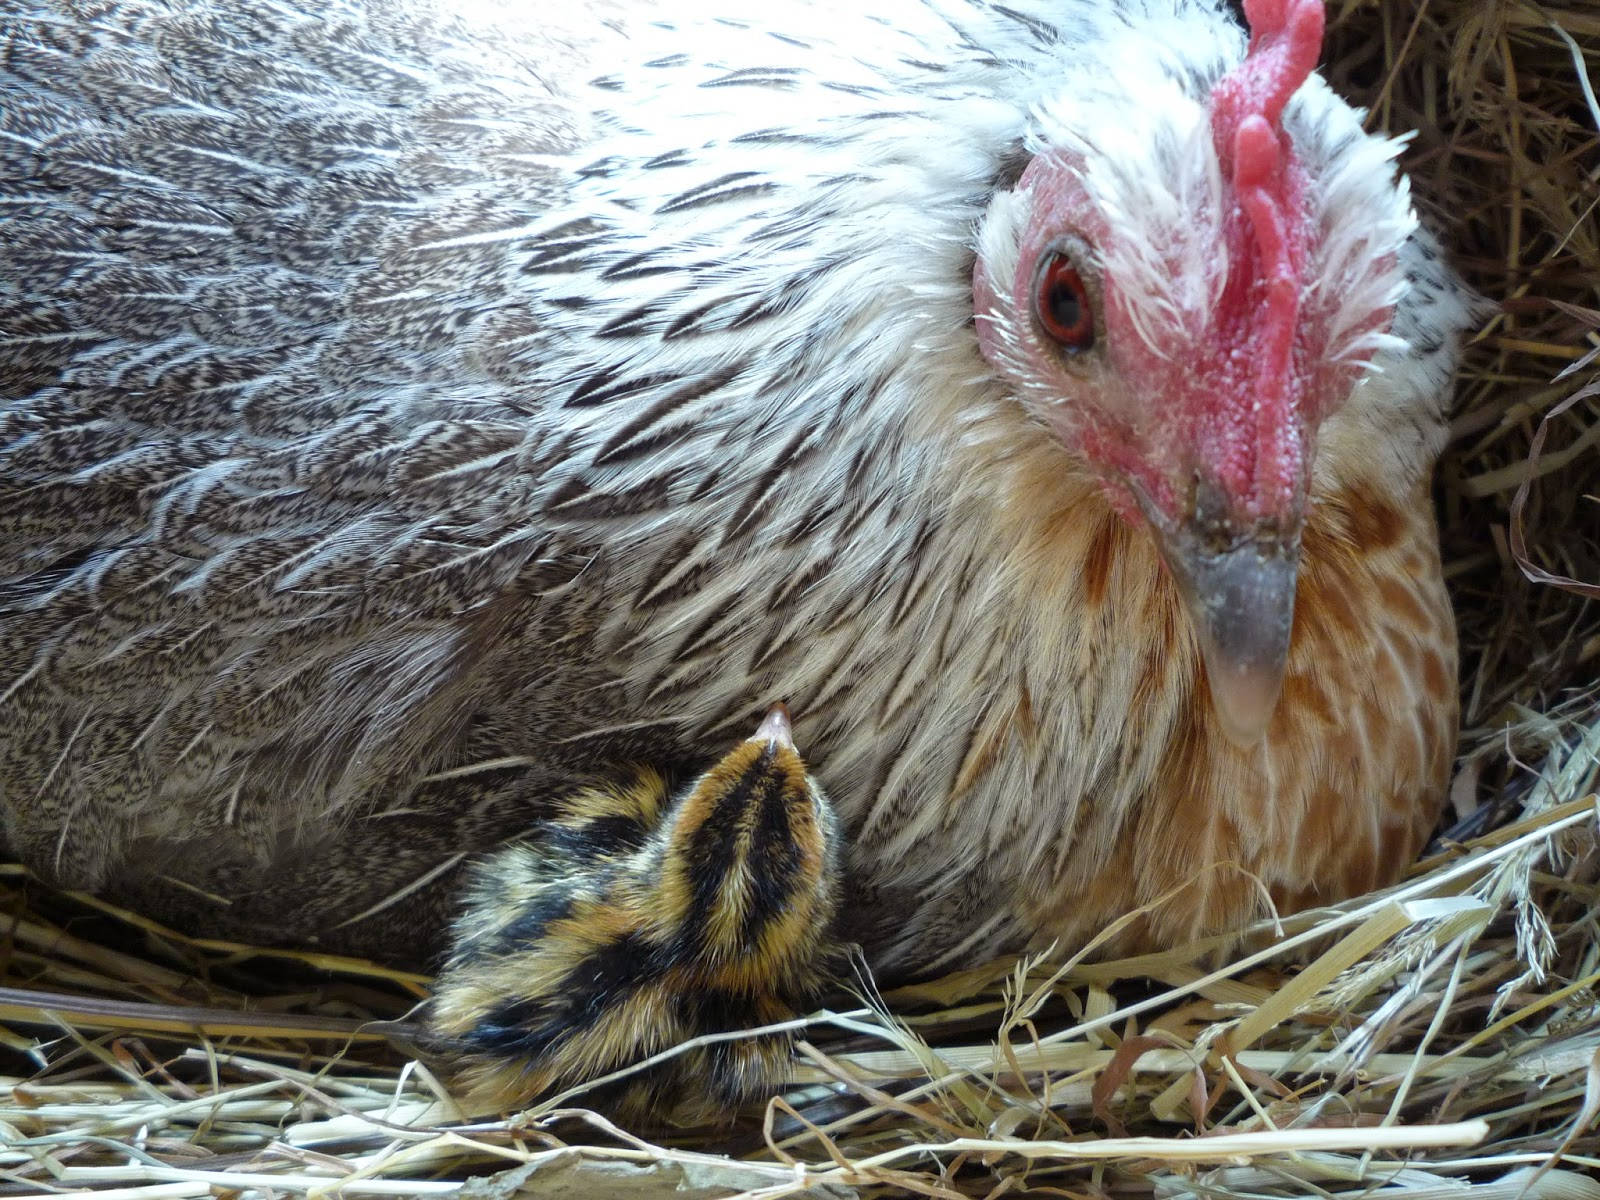 Organic quail chick and mother hen